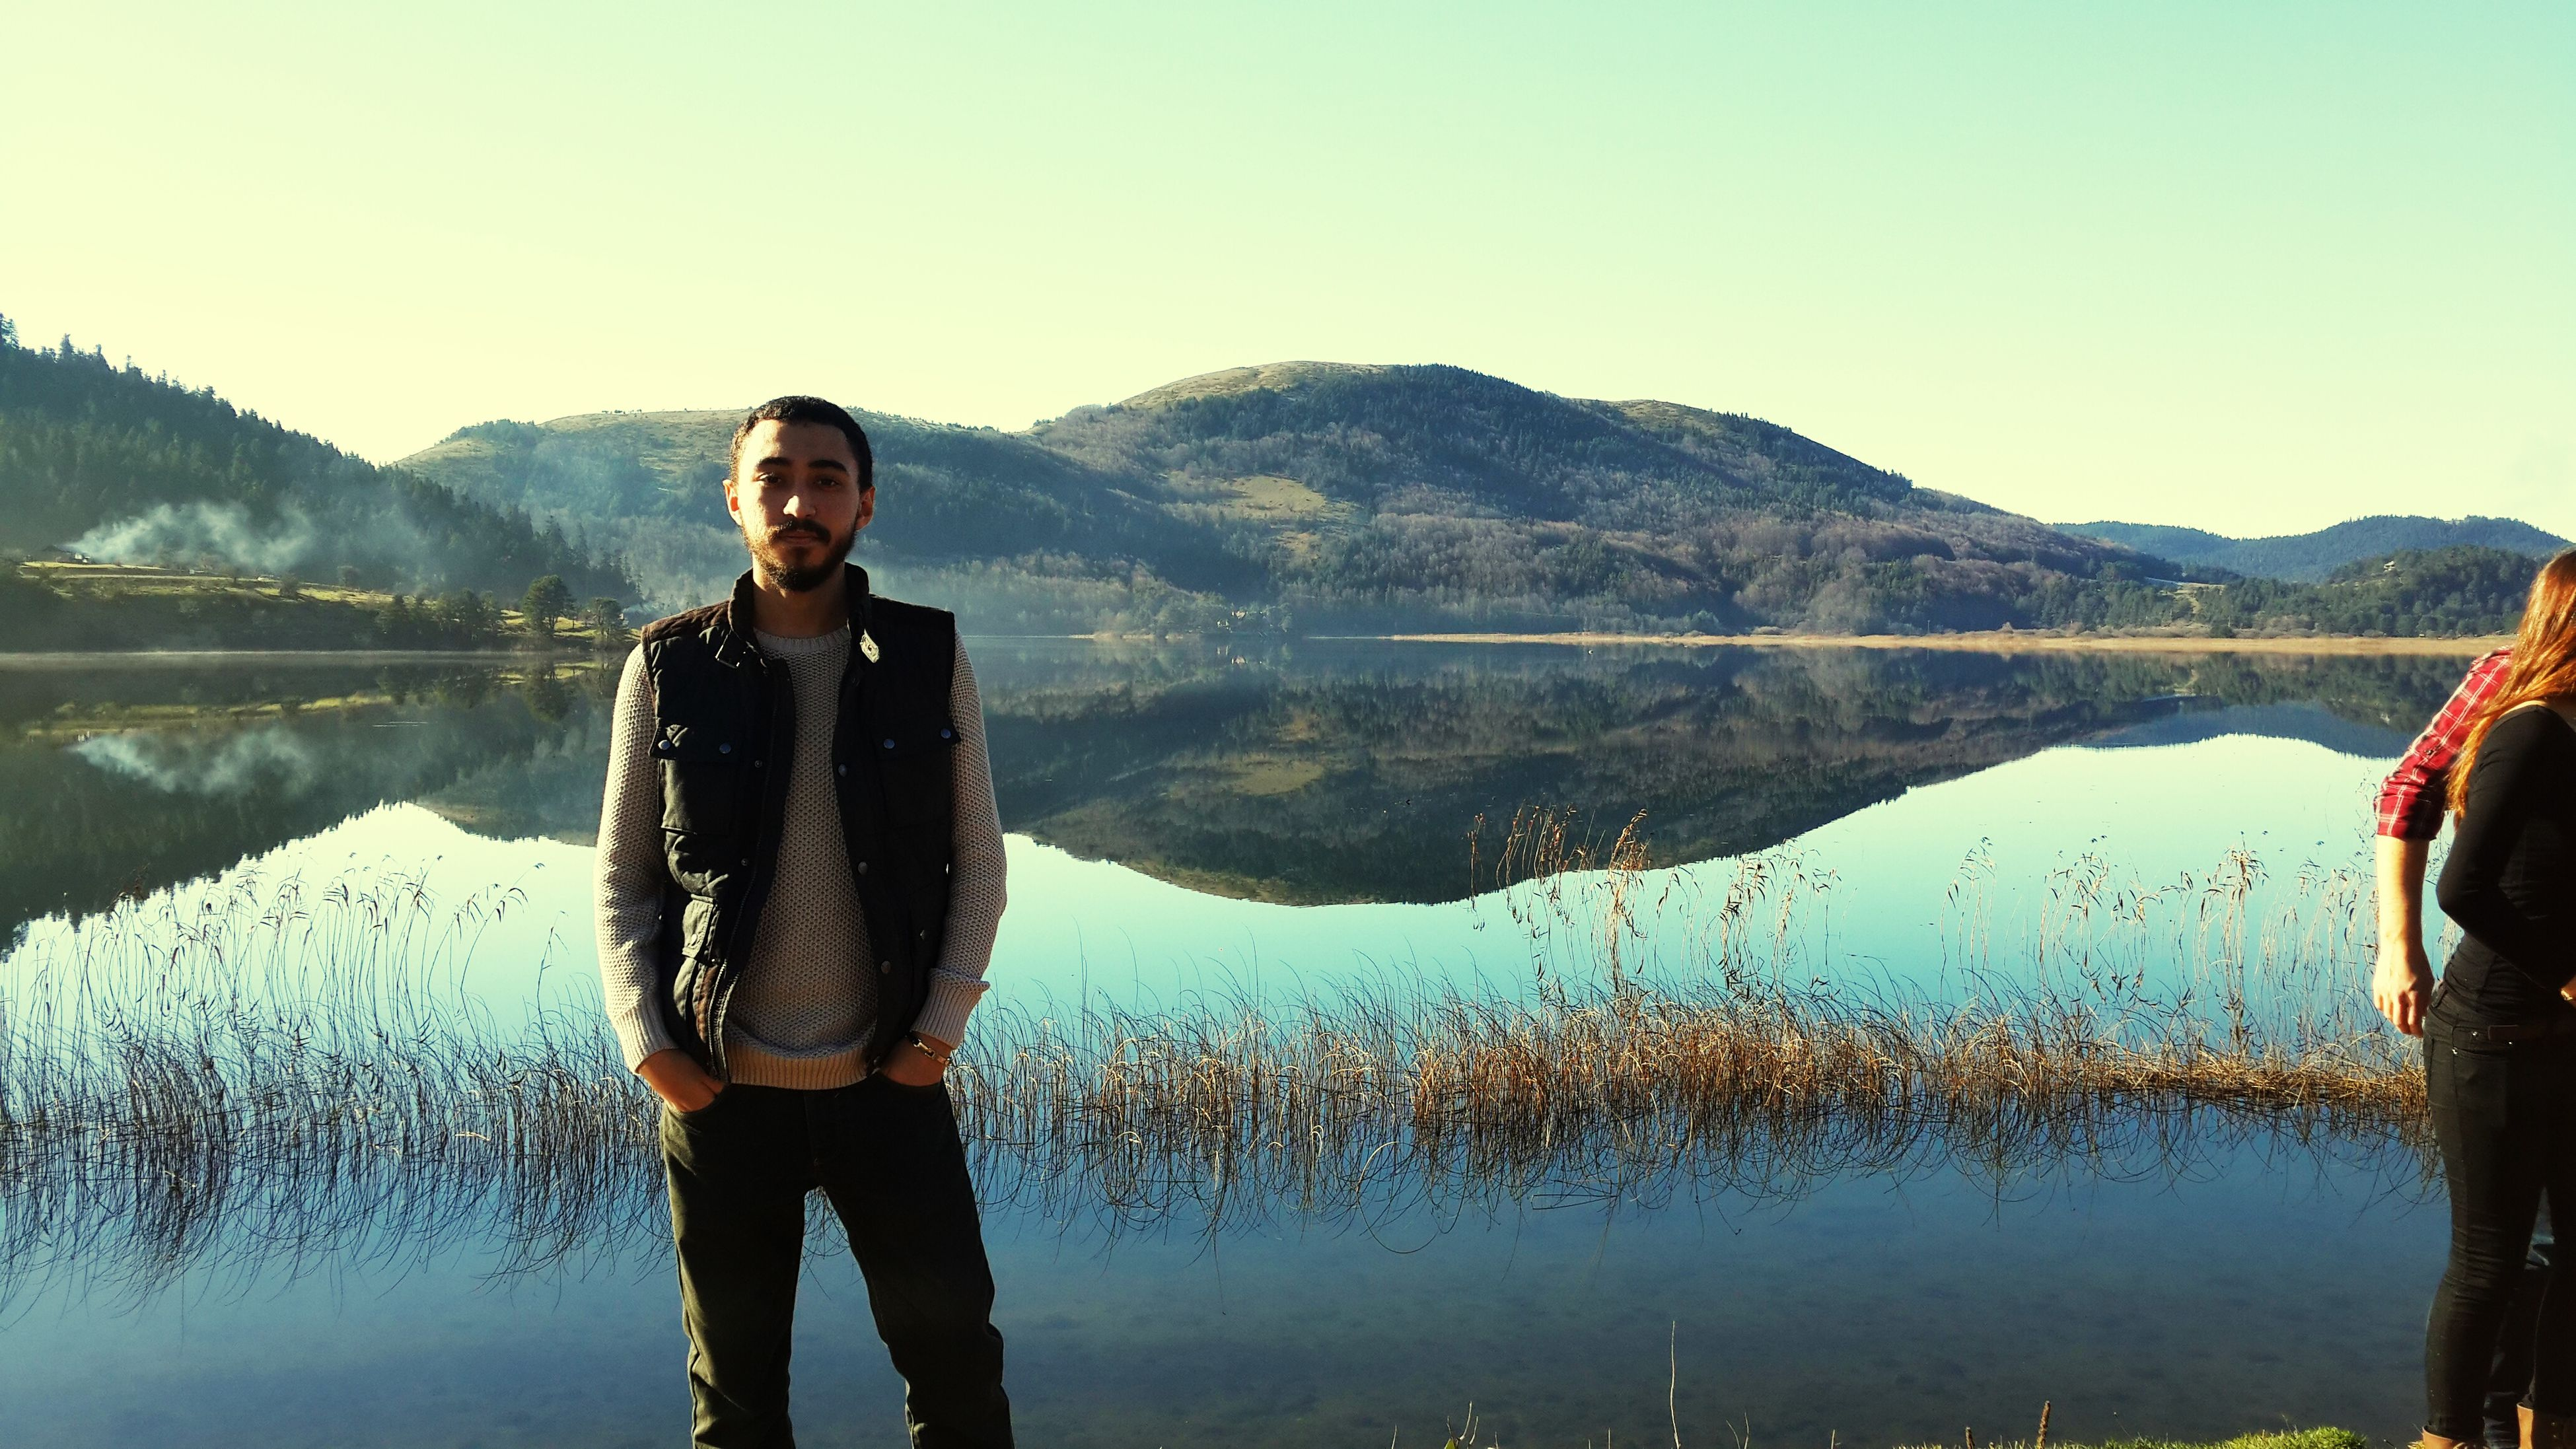 water, mountain, standing, lake, lifestyles, tranquility, leisure activity, tranquil scene, scenics, reflection, young adult, mountain range, three quarter length, clear sky, beauty in nature, casual clothing, nature, young men